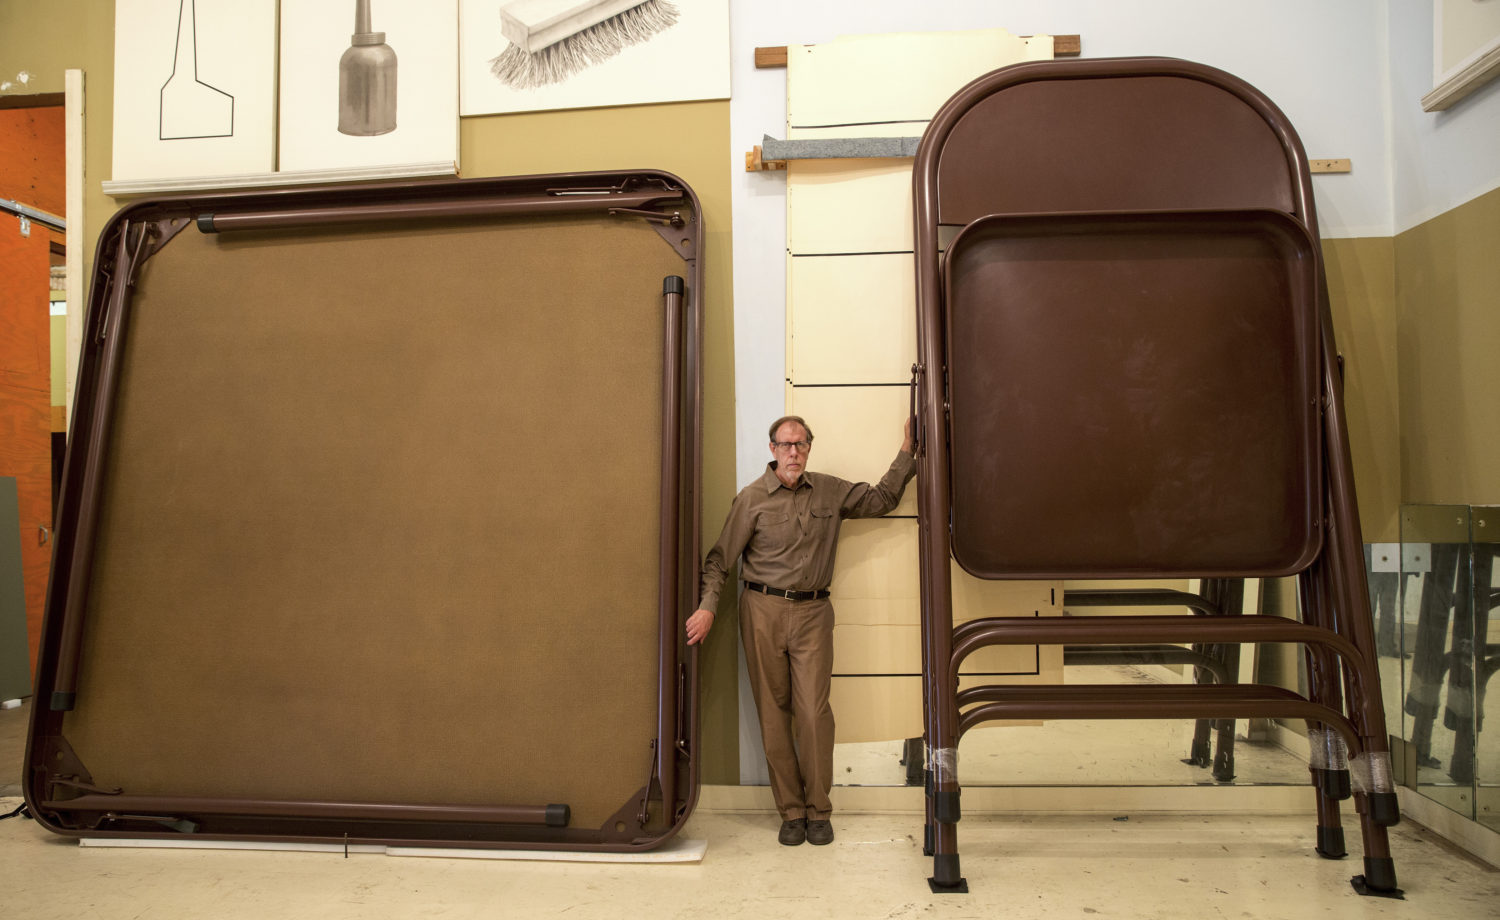 Robert Therrien, the LA Artist Famed for His Giant-Sized Sculptures of Chairs and Other Everyday Objects, Has Died at 71